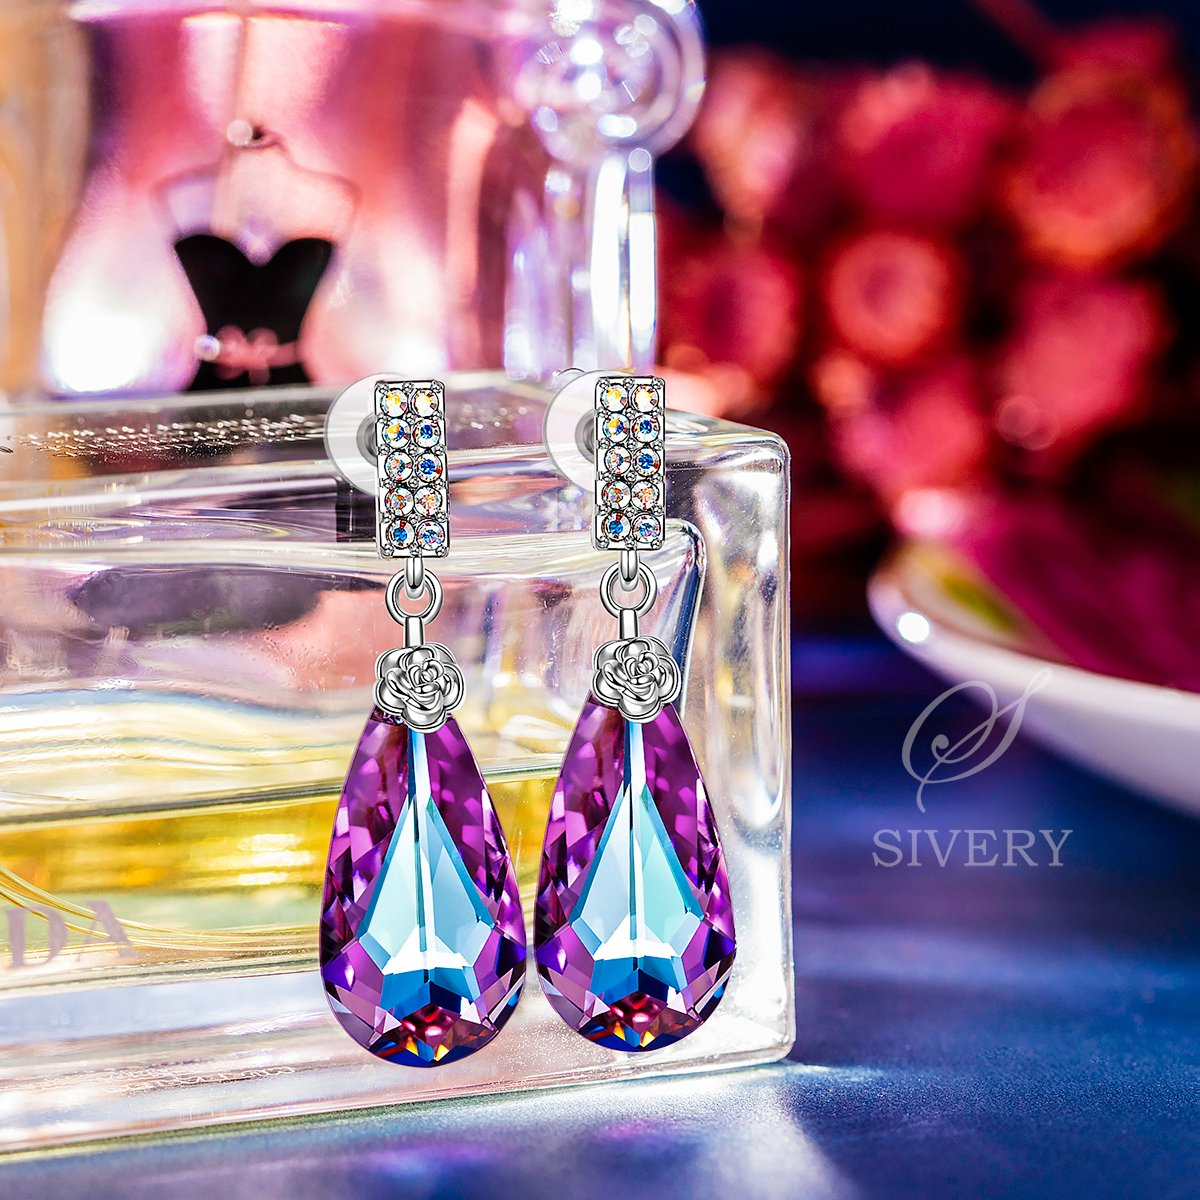 SIVERY 'Teardrop of Angel' Stud Dangle Earrings with Purple Swarovski Crystals, Jewelry for Women Gifts for Mom by S SIVERY (Image #4)